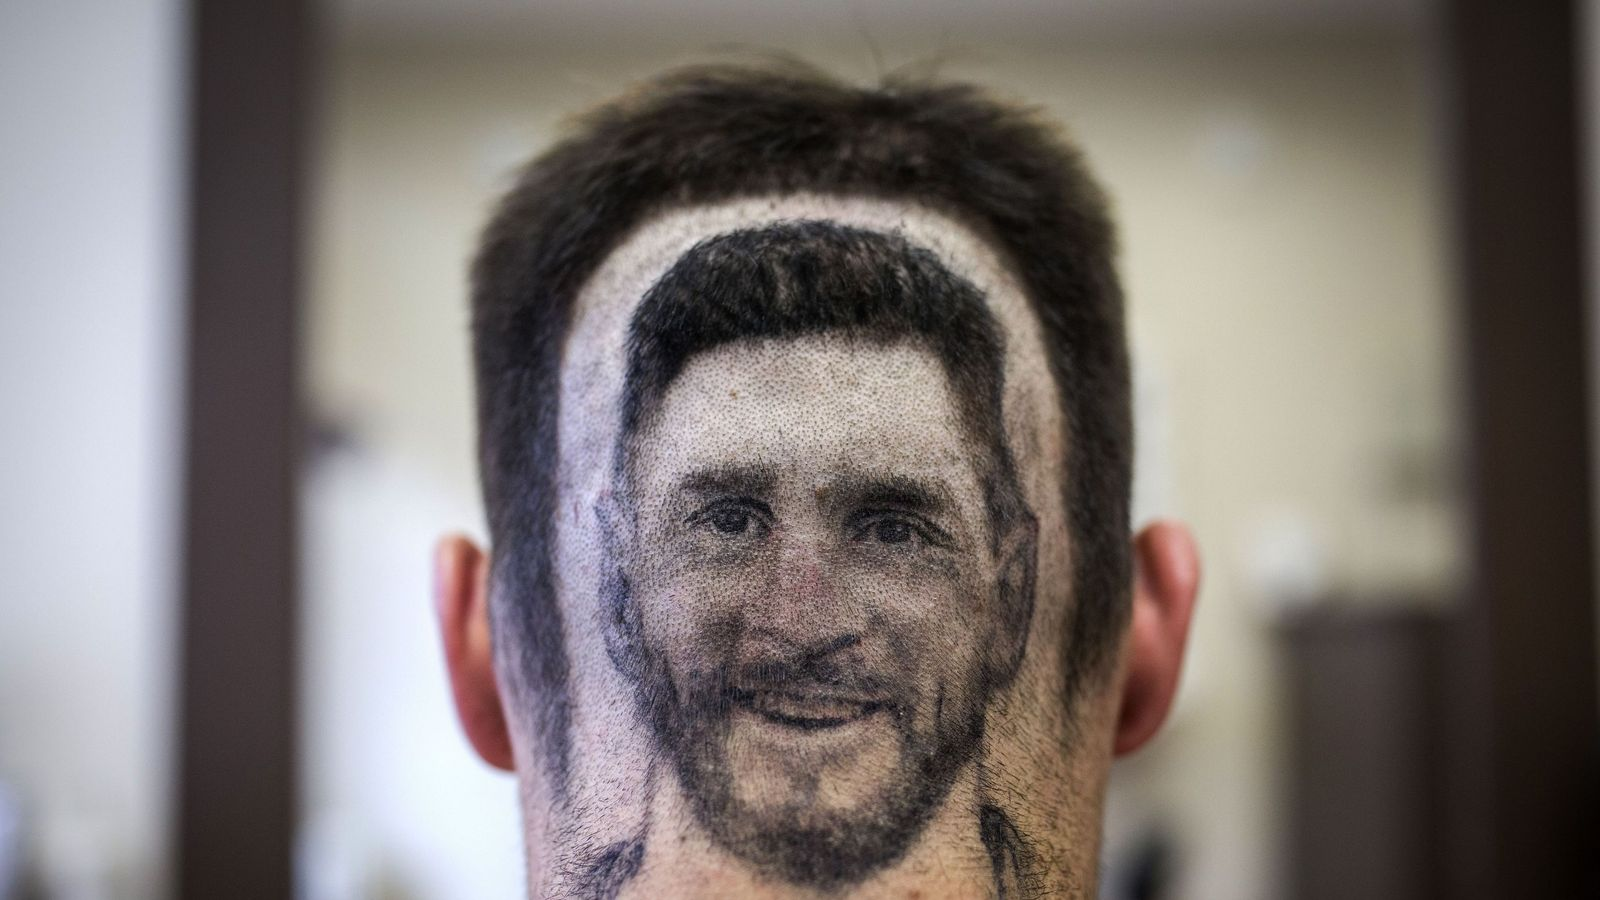 Messi hair: Barber shaves player's image into fans' hair ...